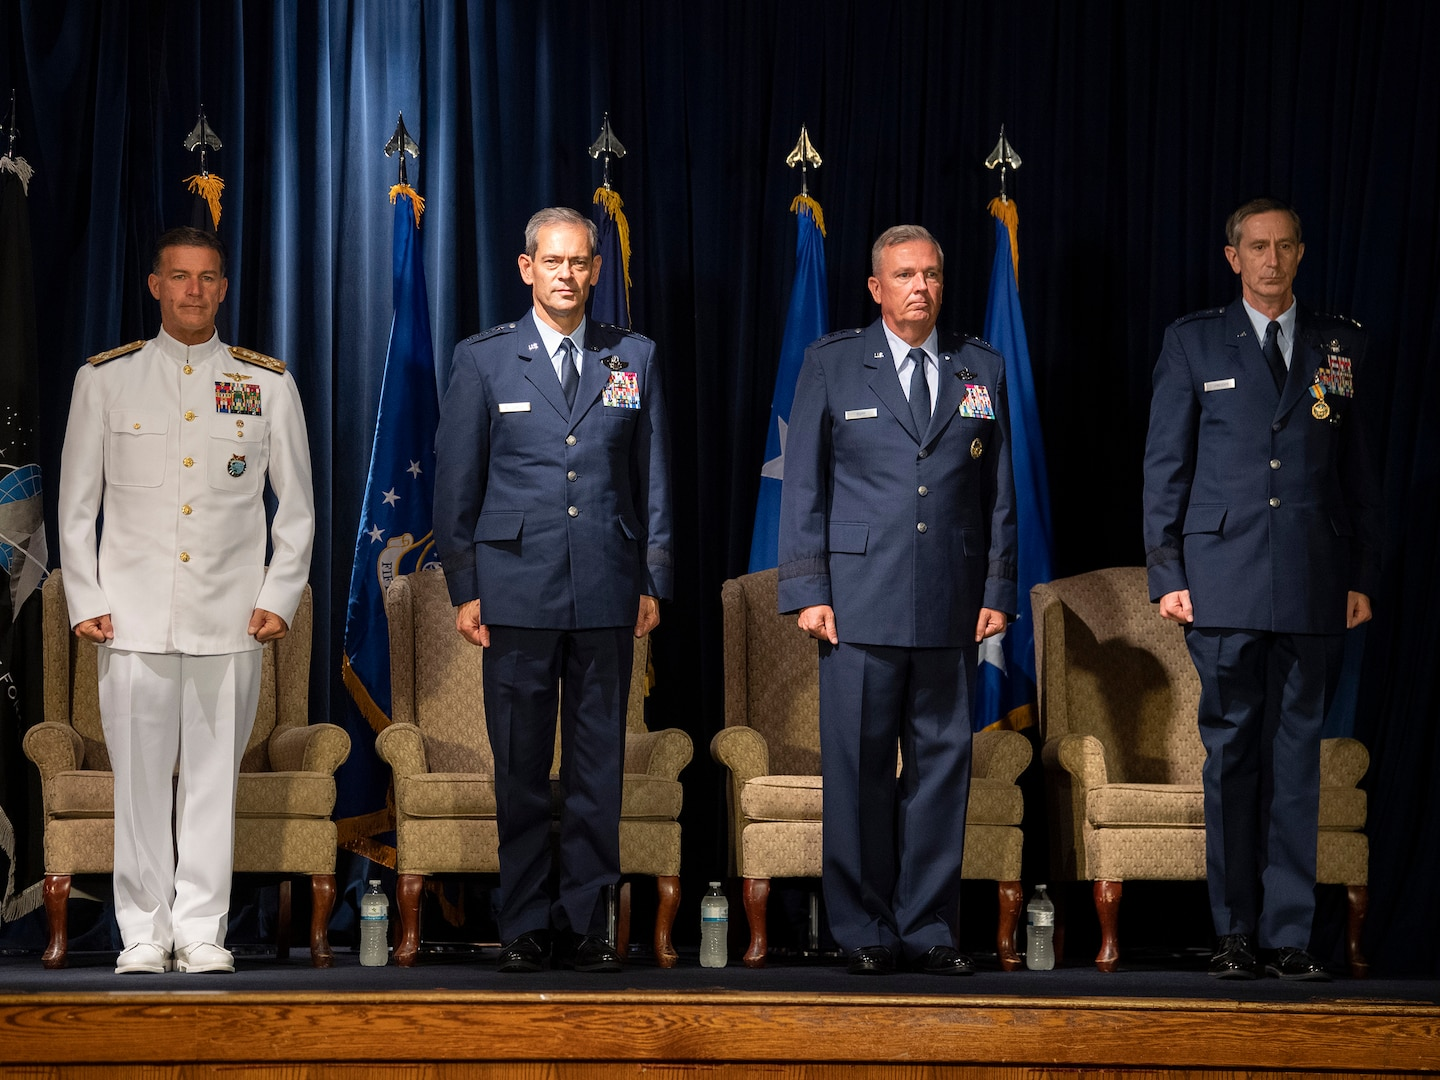 Lt. Gen. Rupp Takes Command of U.S. Military in Japan